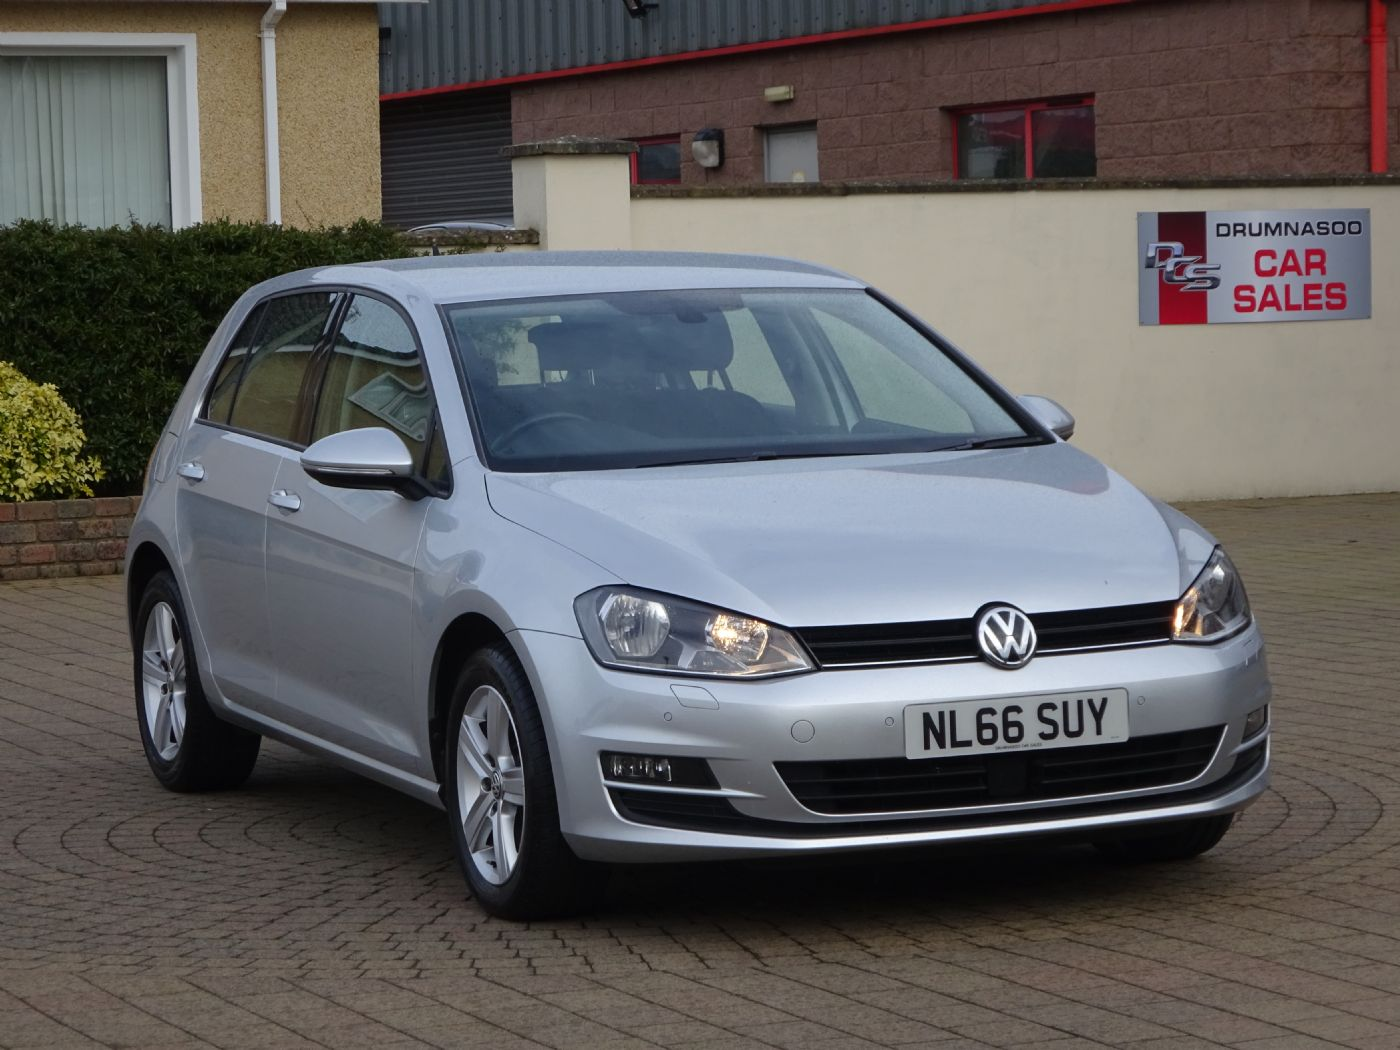 Volkswagen Golf Match Edition 1.6 TDI, Sat nav, Heated front seats